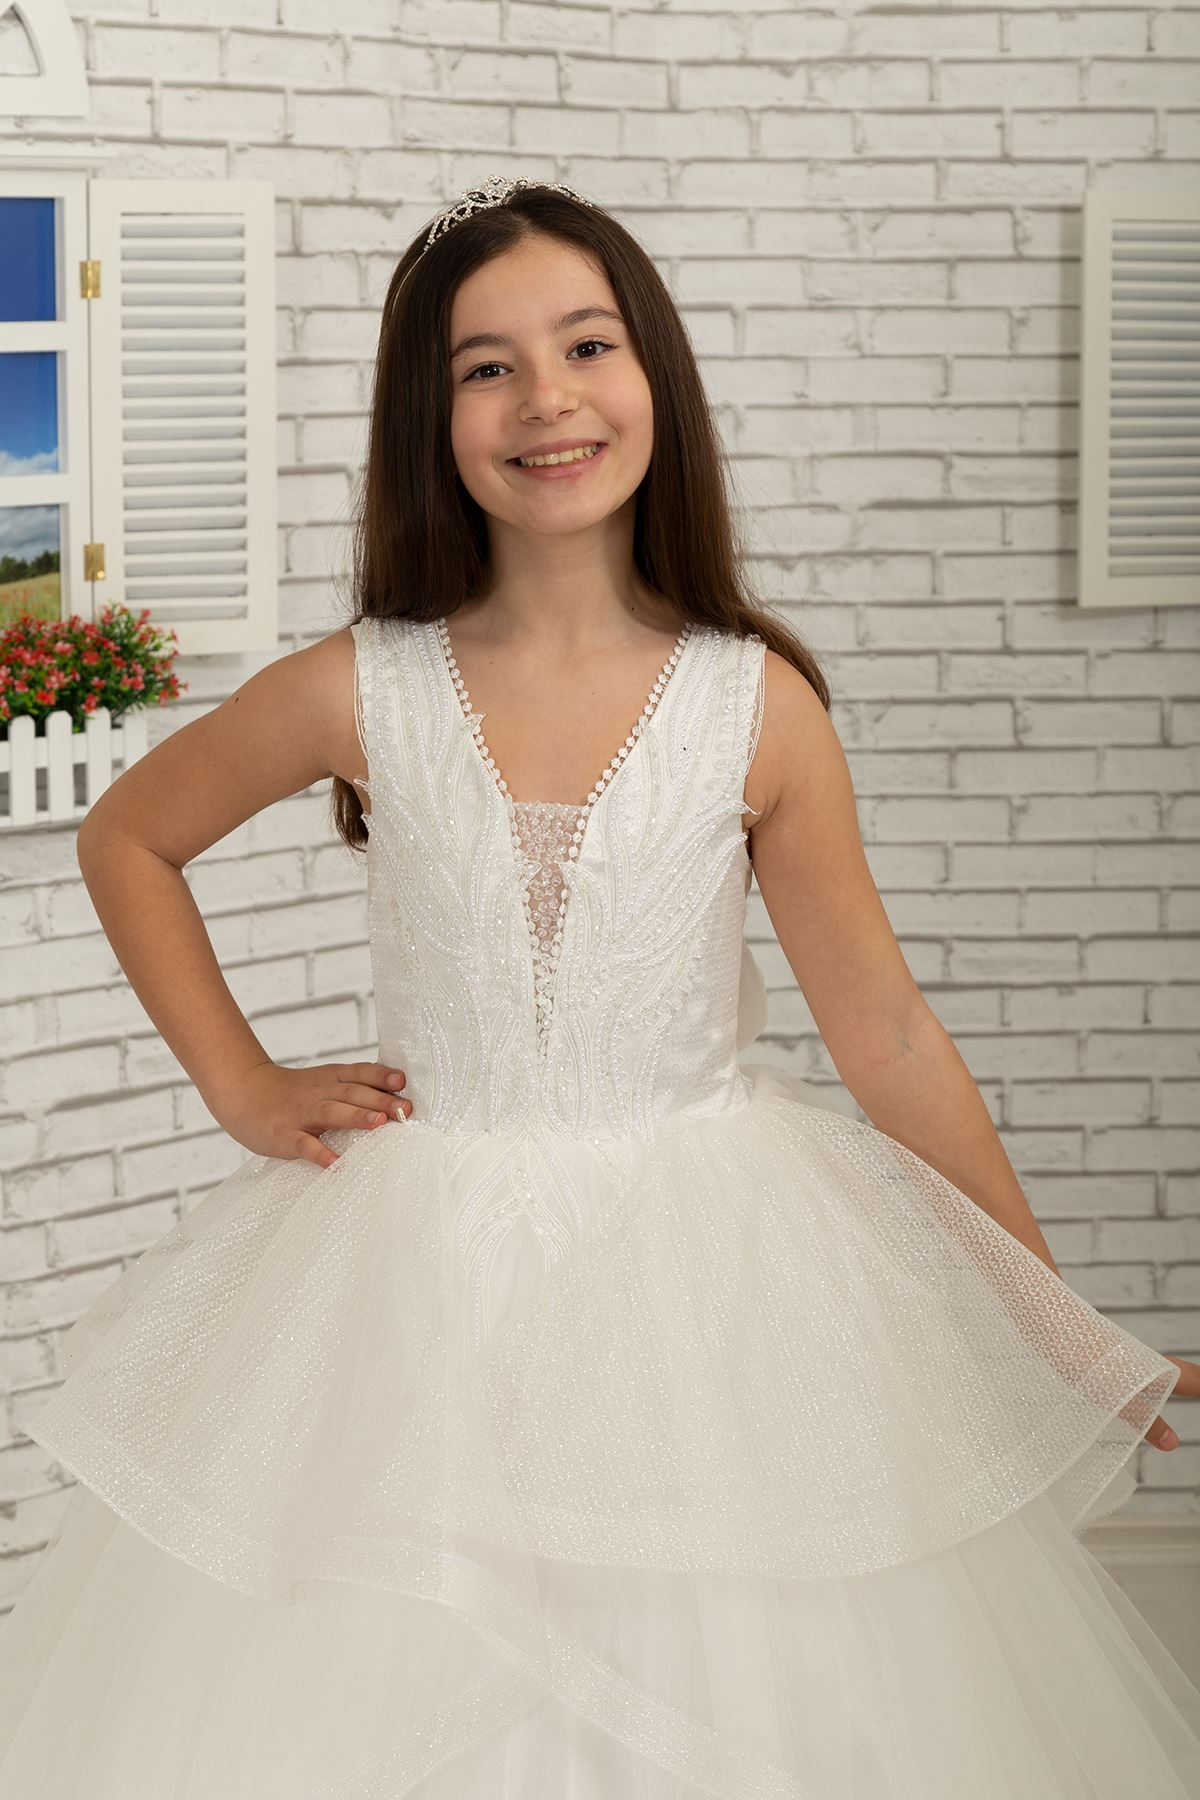 Bestickte Applikation, Rock applique detail, Tüll Flauschige Mädchen Abendkleid 623 Creme